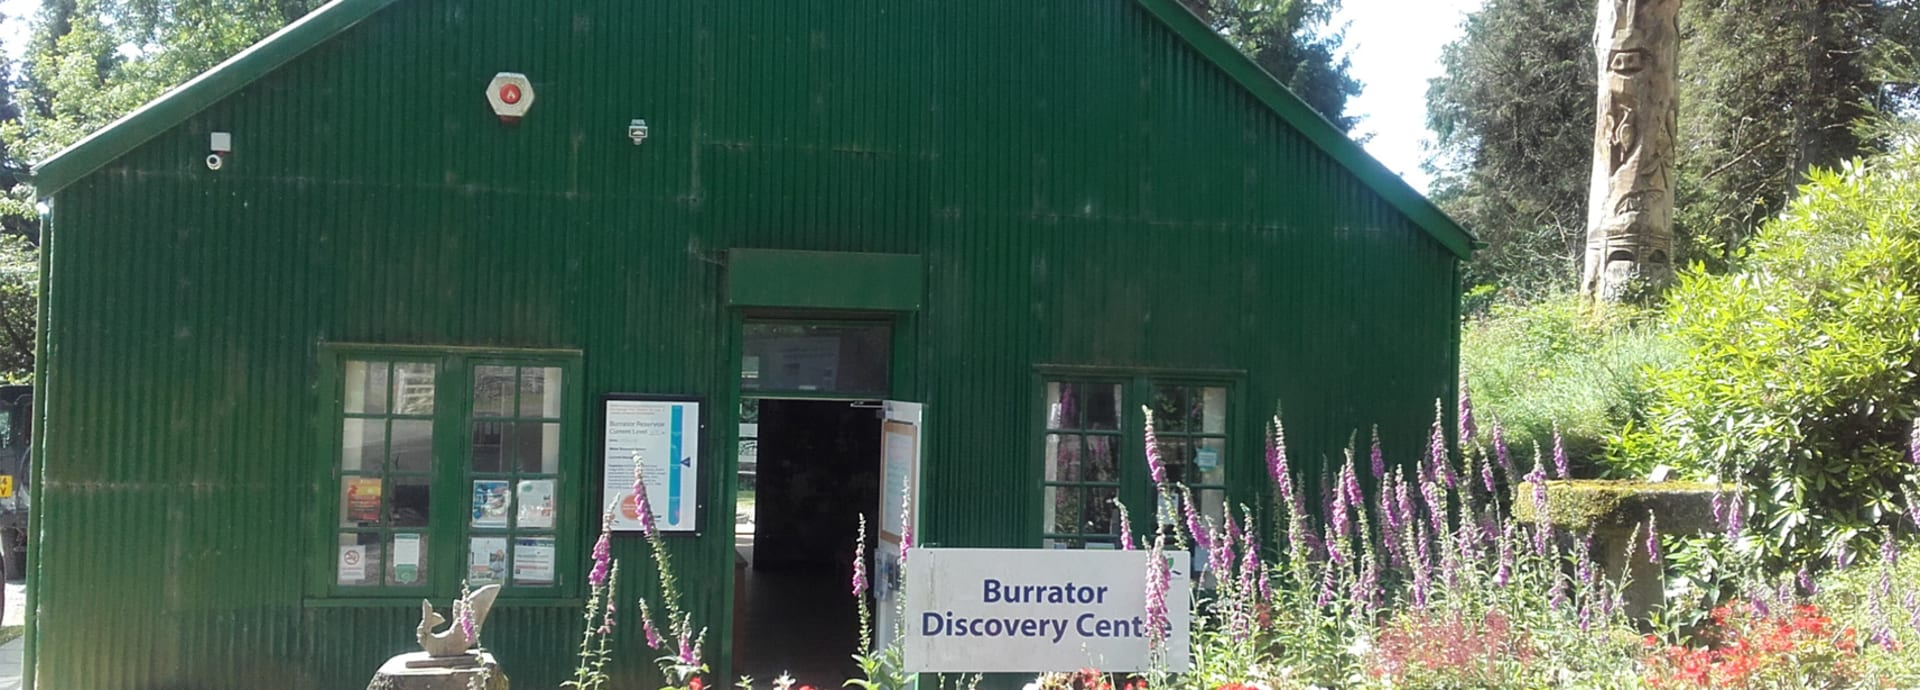 Burrator News 31 - July Monthly Newsletter